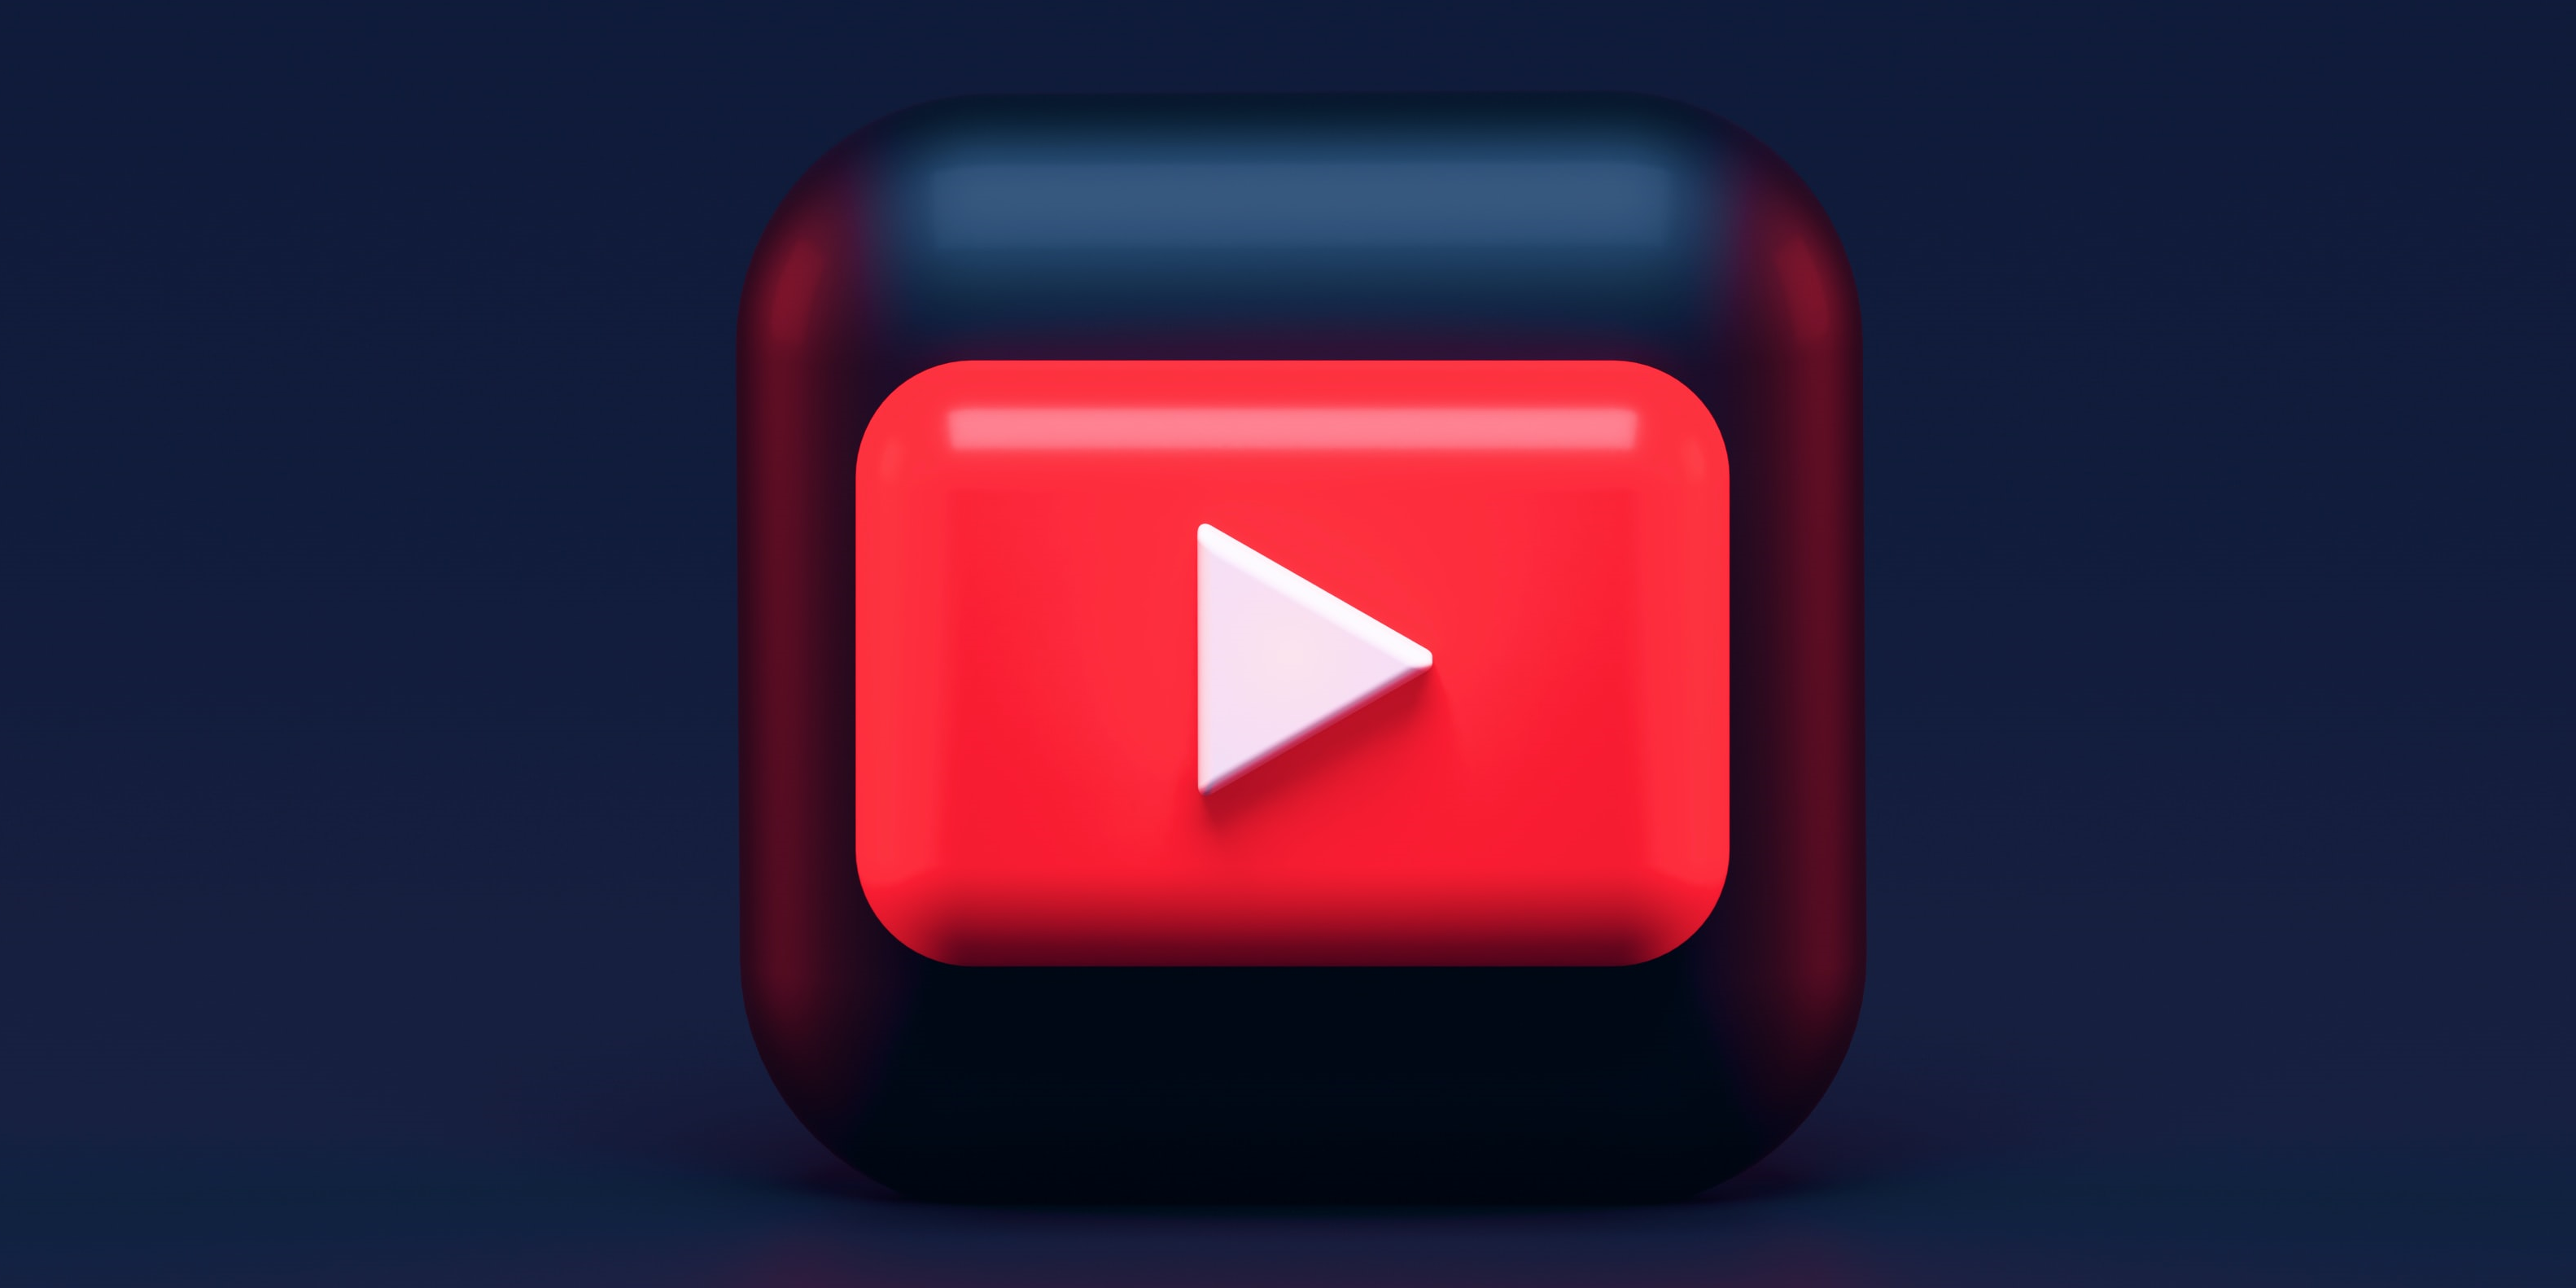 The DPM Update: YouTube Tests Live-Stream Shopping